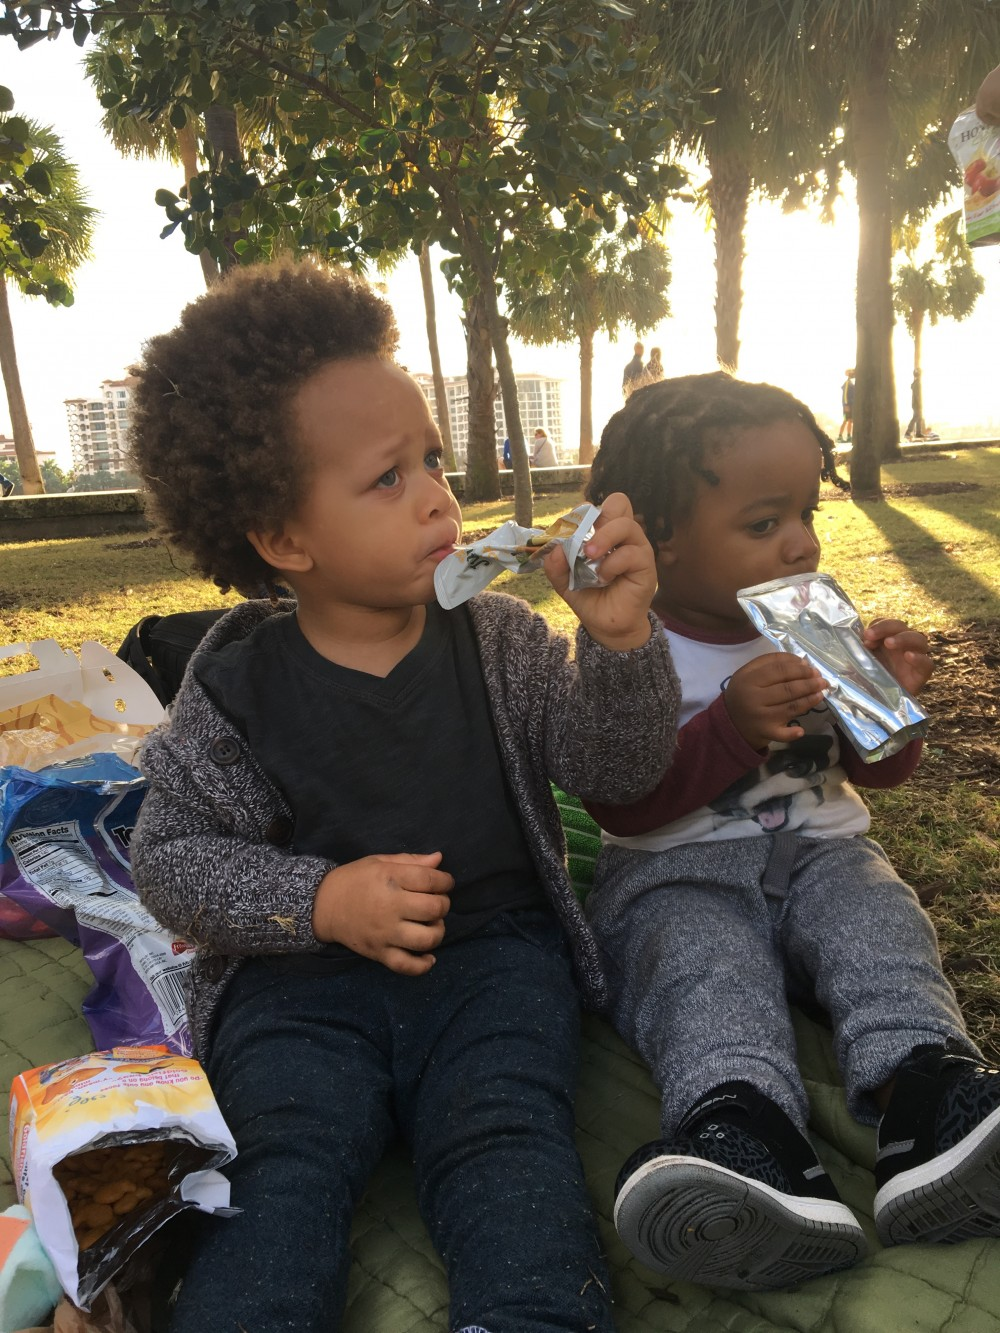 Playtime; picnic in the park